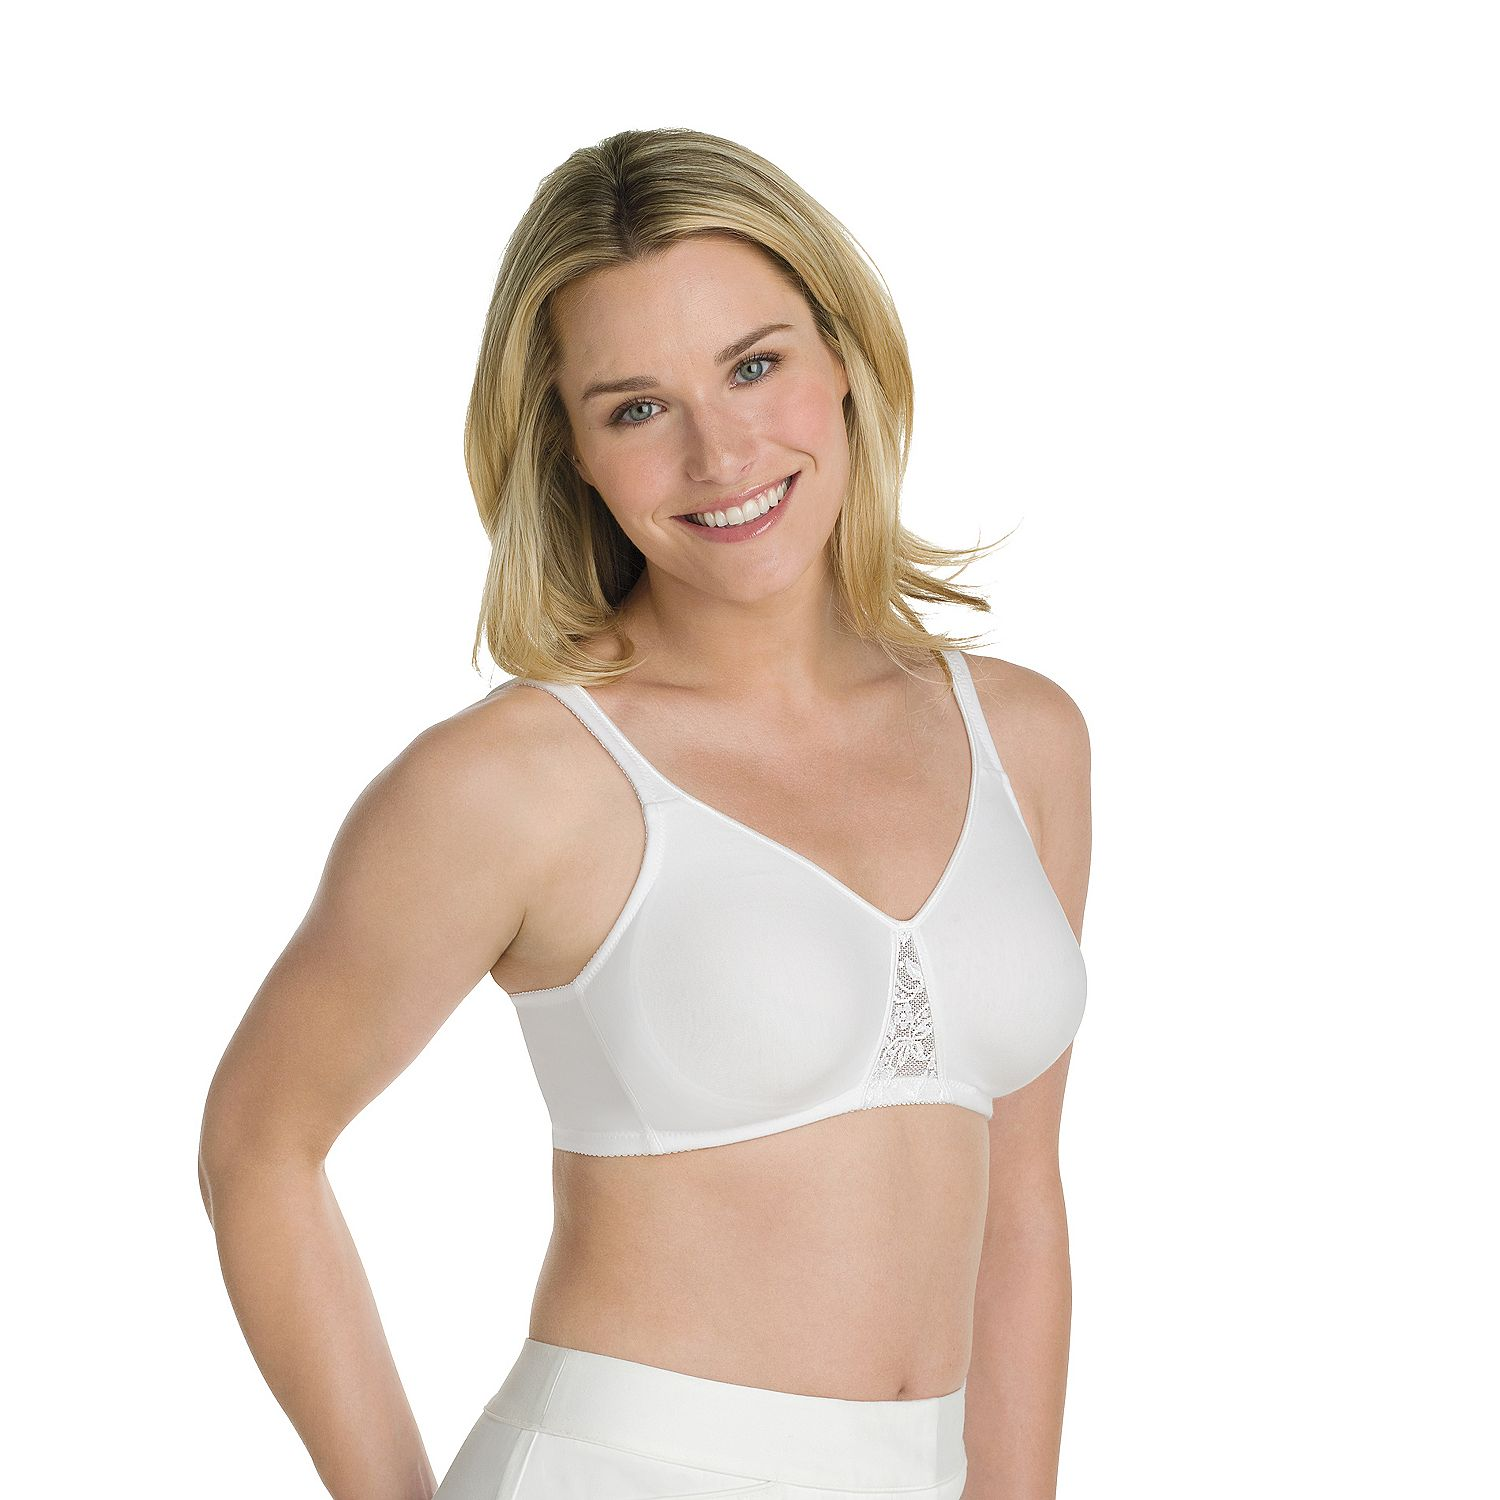 Playtex Bra 05227 Sale | Free Shipping Playtex Cottony Soft Bra